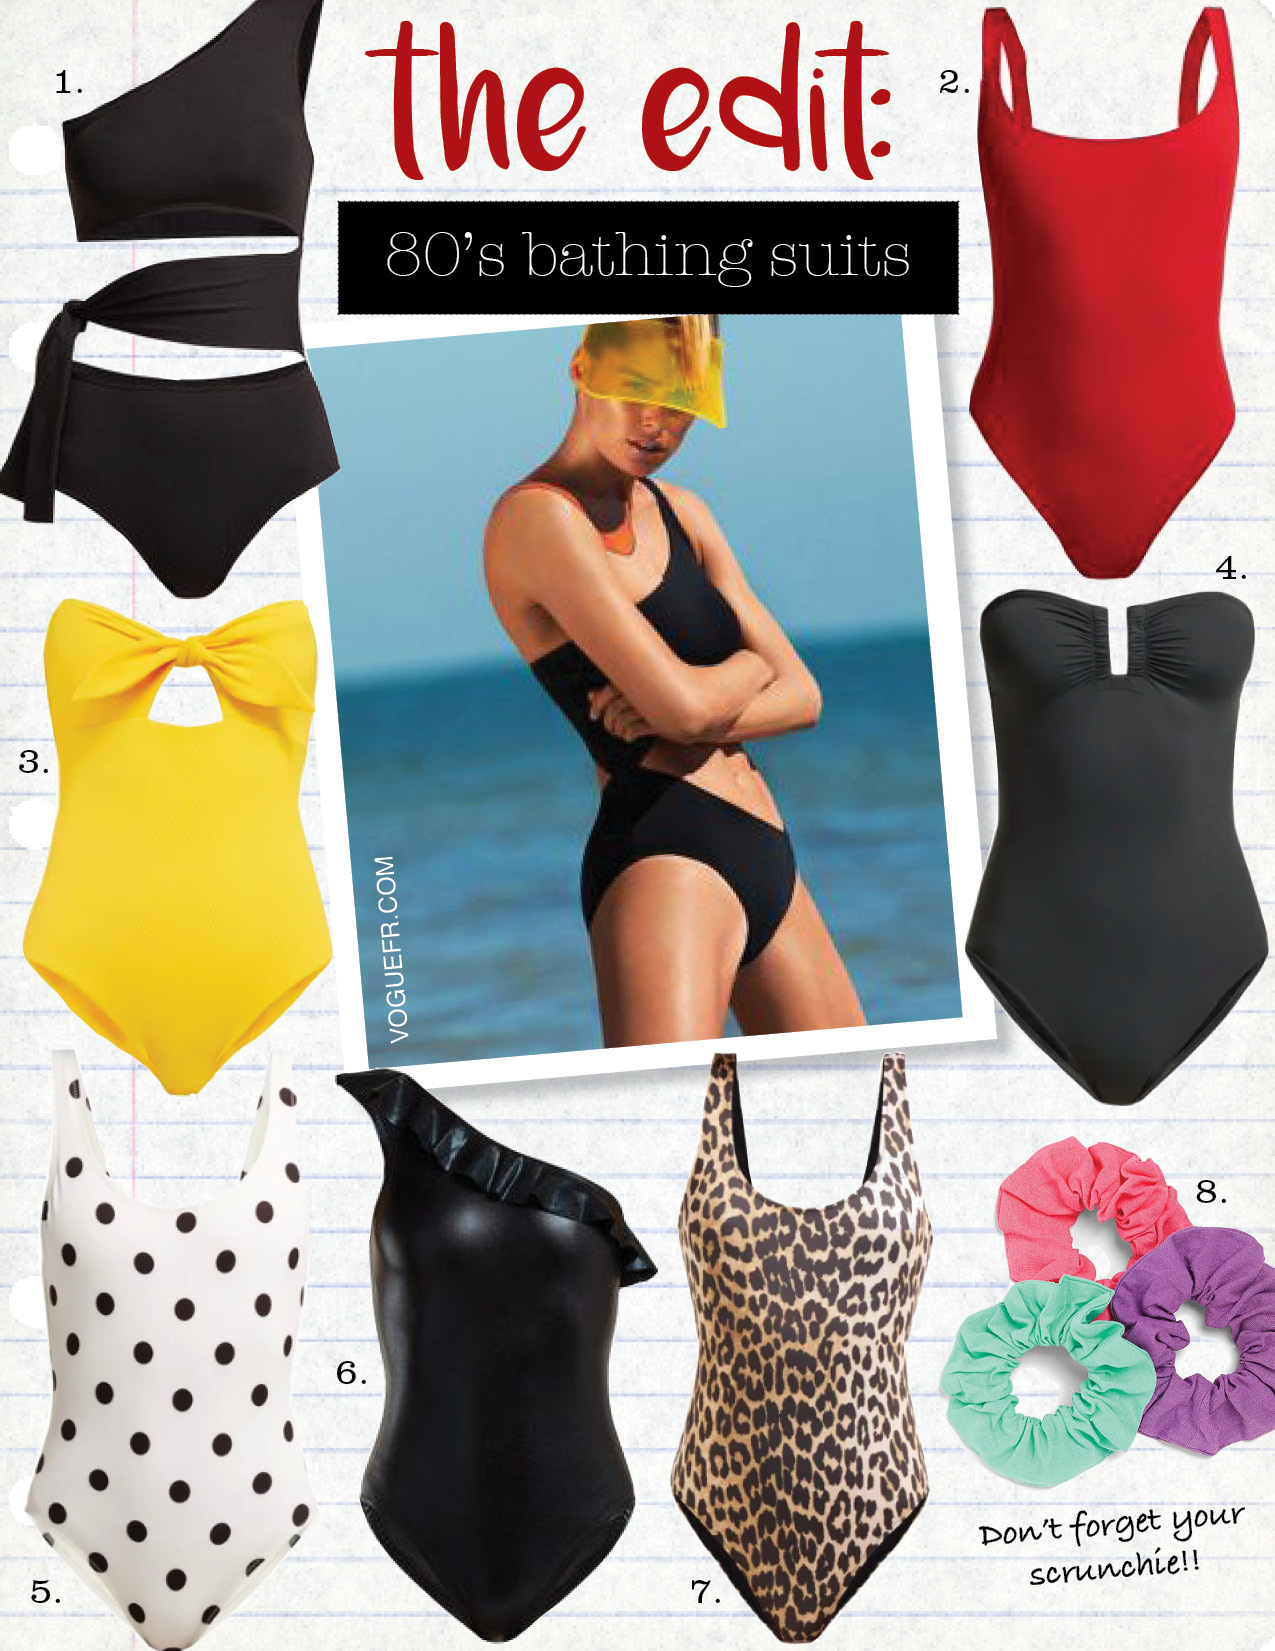 1. eres poker million one-shoulder cut-out swimsuit, $503,  matchesfashion.com  2. fisch select swimsuit, $193,  matchesfashion.com  3. cossie+co the alice swimsuit, $152,  matchesfashion.com  4. eres les essentiels cassiopee bandeau swimsuit, $387,  matchesfashion.com  5. solid and striped the anne-marie polka-dot swimsuit, $159,  matchesfashion.com  6. Norma Kamali mio ruffled one-shoulder swimsuit, $175,  matchesfashion.com  7. ganni leopard-print swimsuit, $128,  matchesfashion.com  8. zara three pack of hair ties, $12,  zara.com